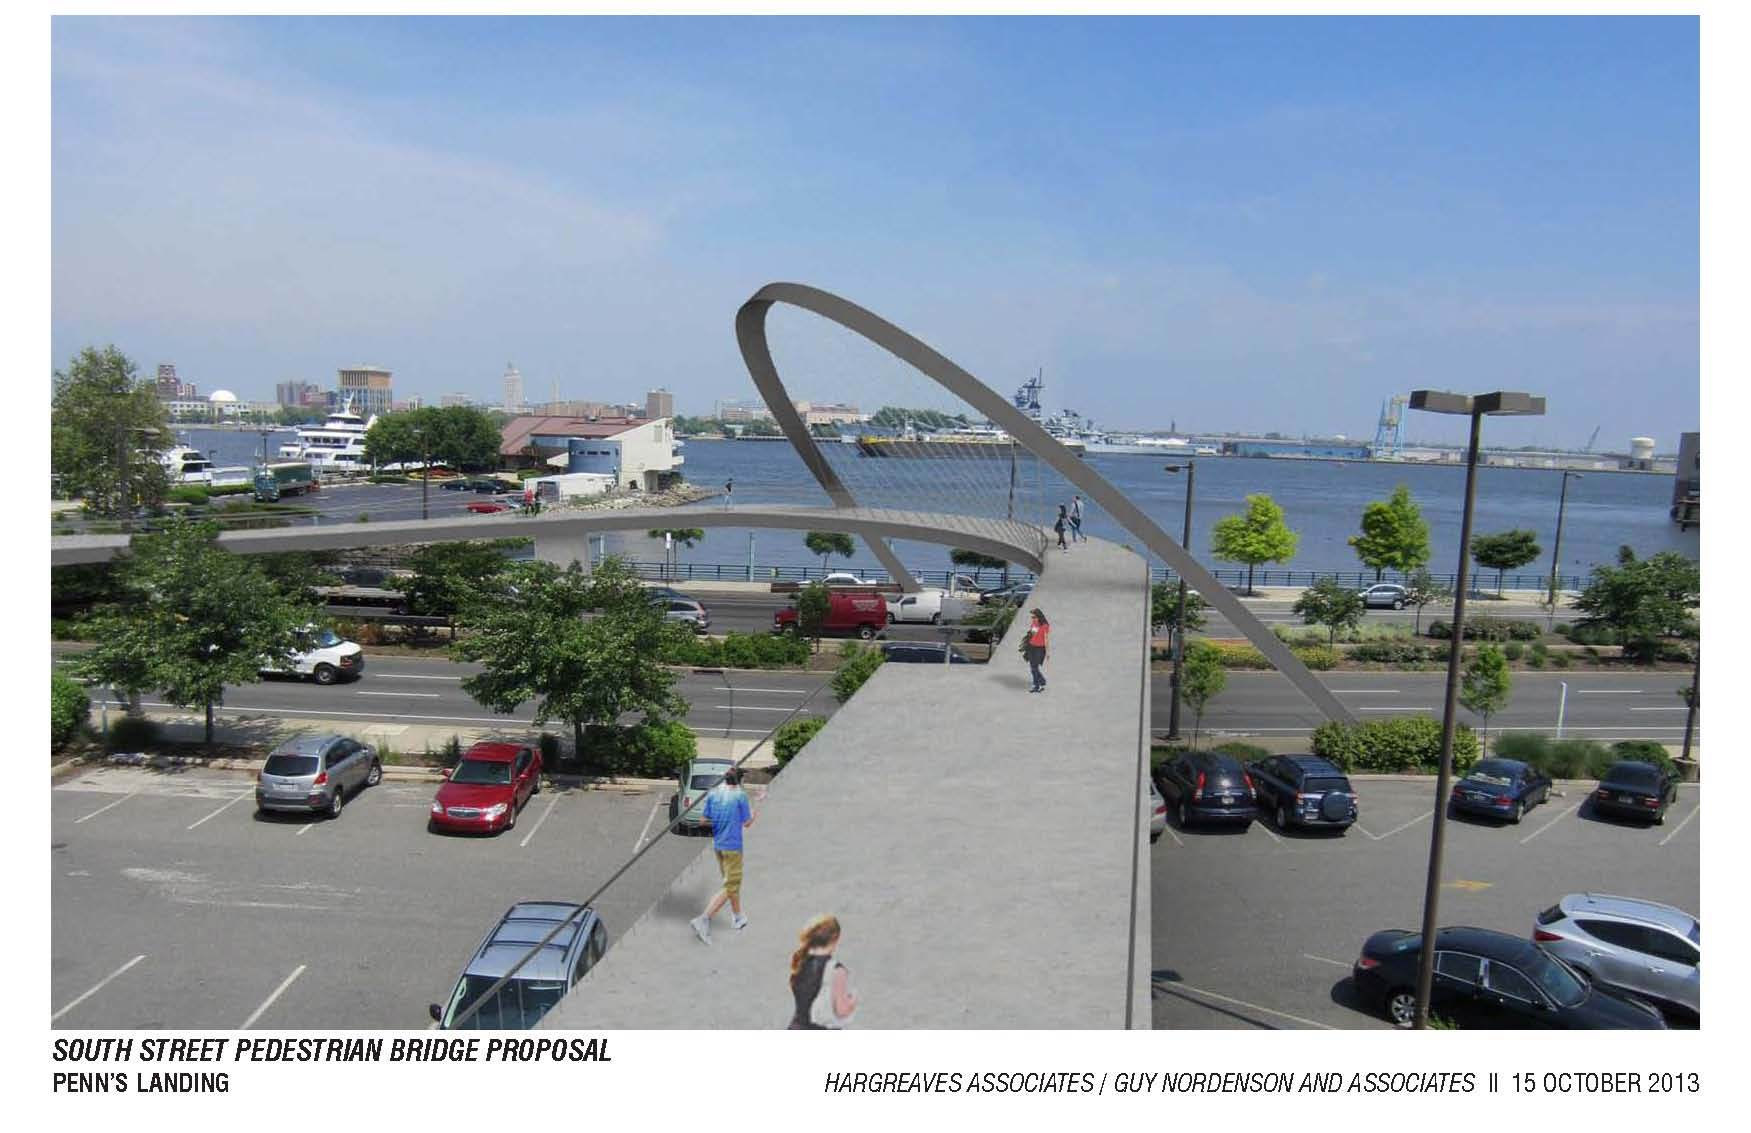 By Hargreaves Associates, image courtesy Delaware River Waterfront Corporation.